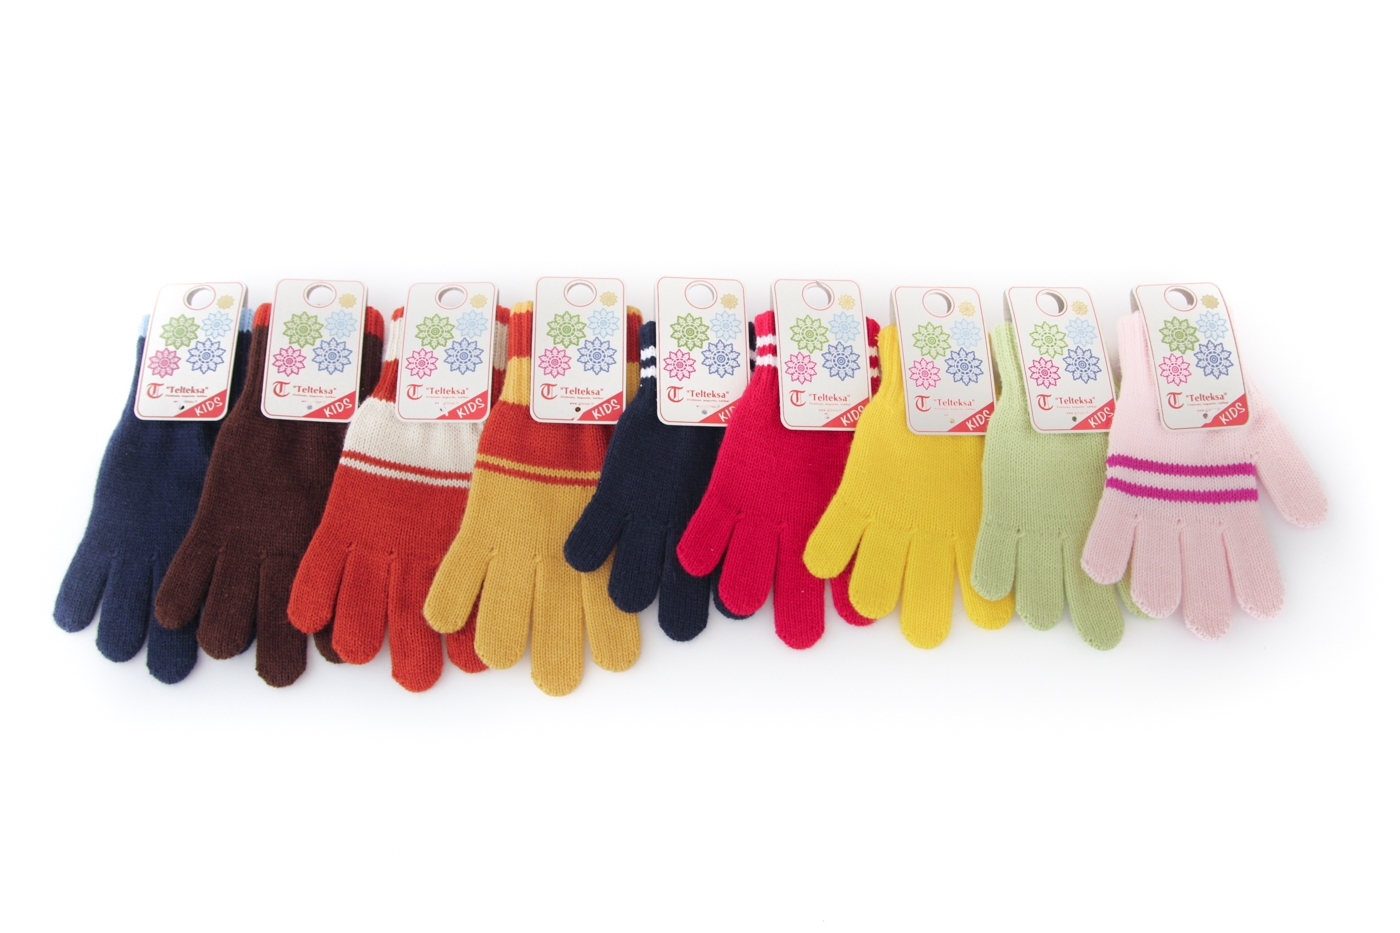 Gloves, mittens | Baltic import/export directory